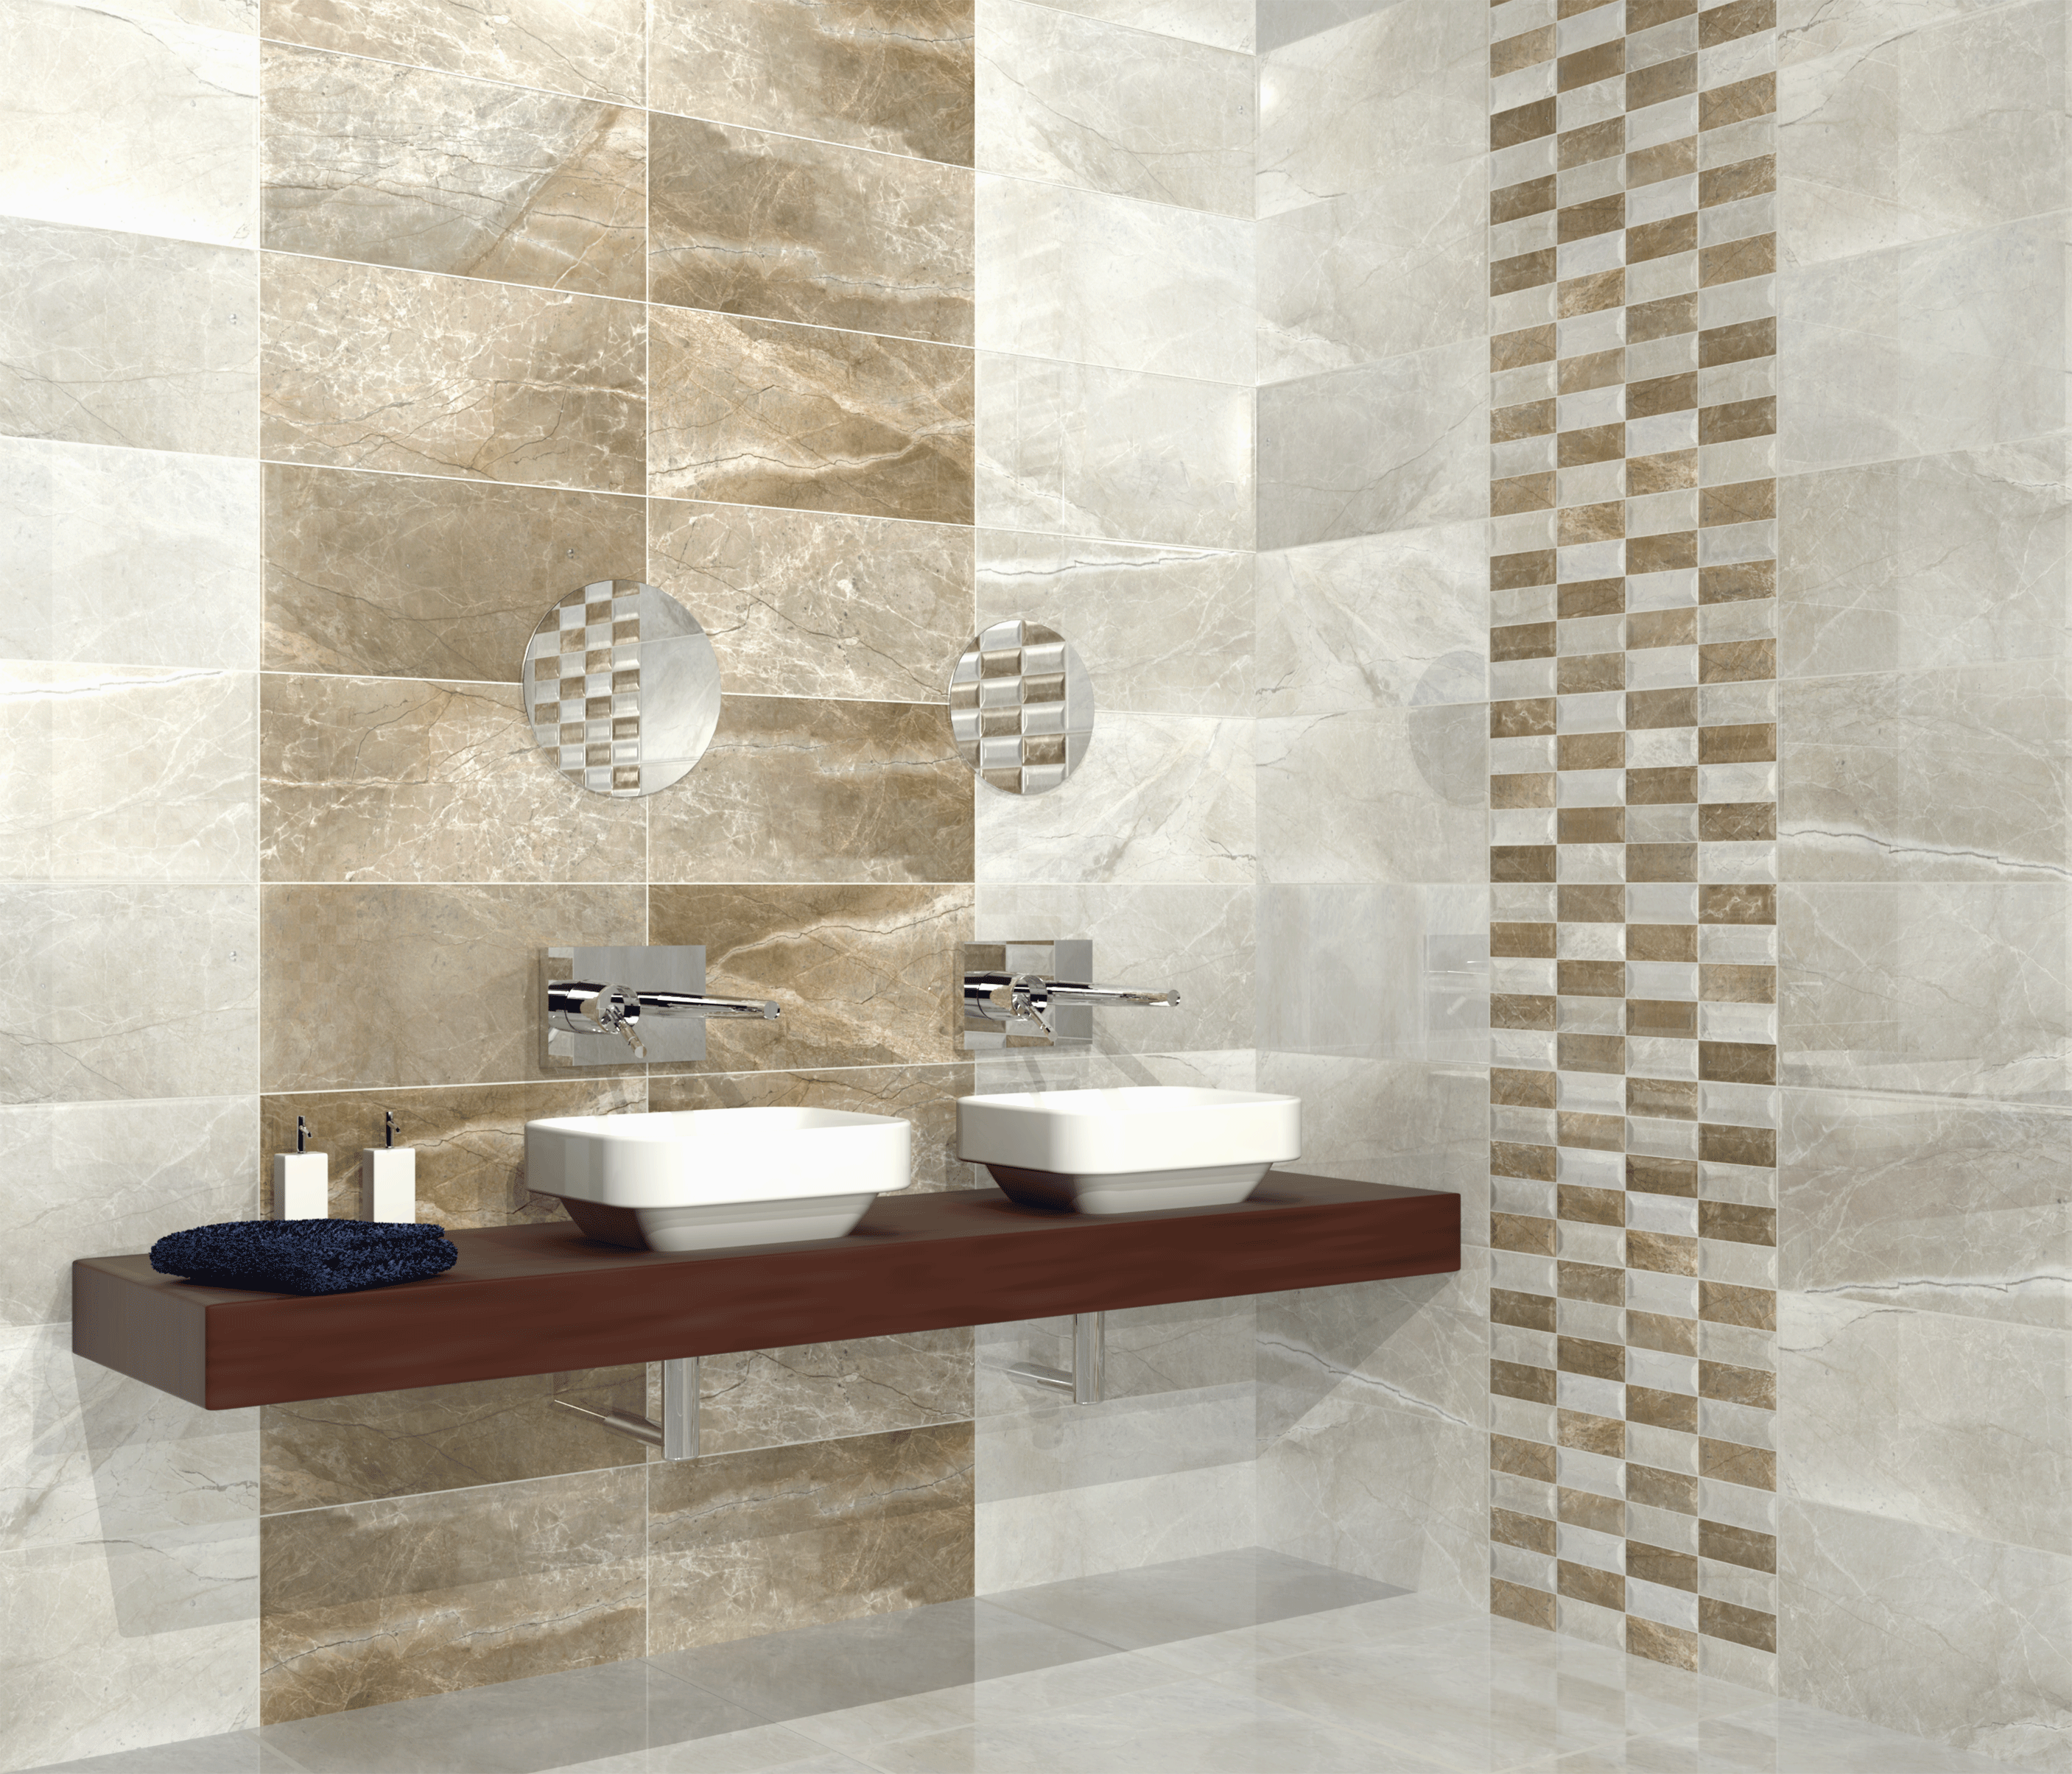 tiles for bathroom bathroom tiles bathroom wall tiles yqxzgwl RLFUPWZ